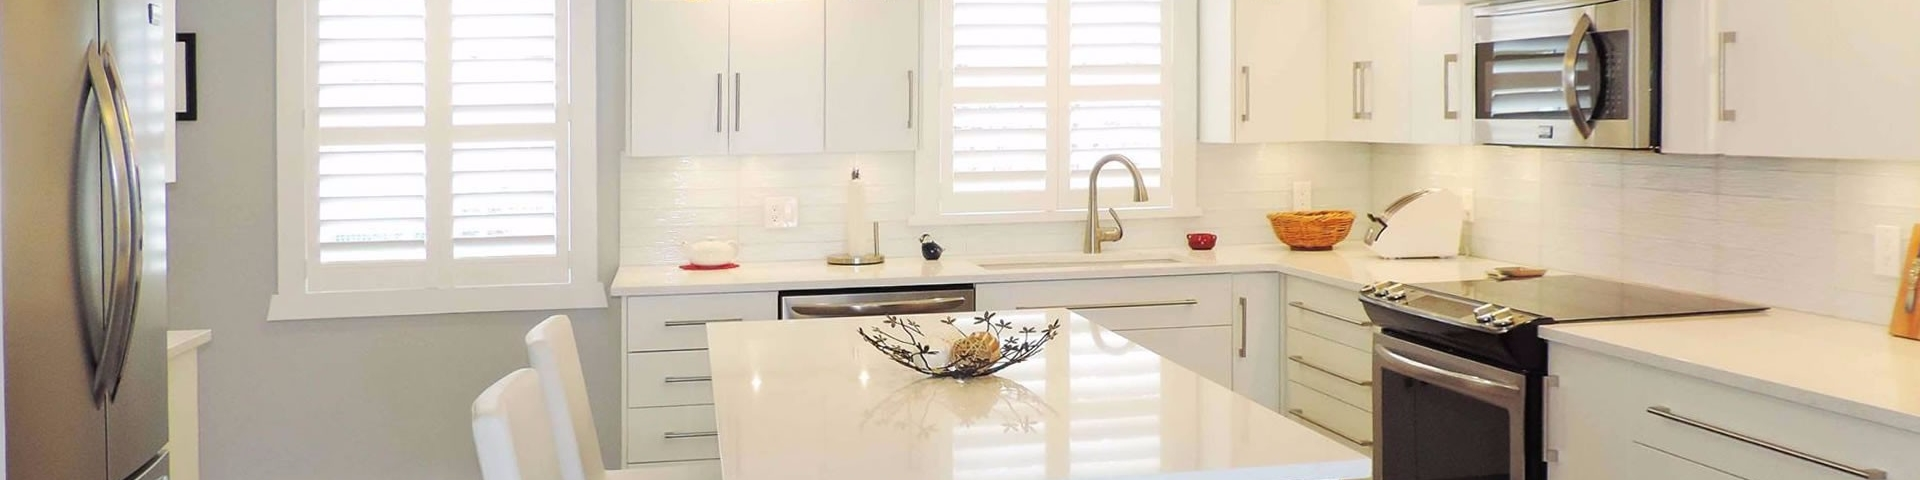 How 3D Printing is Remodeling the Kitchen Cabinet Industry